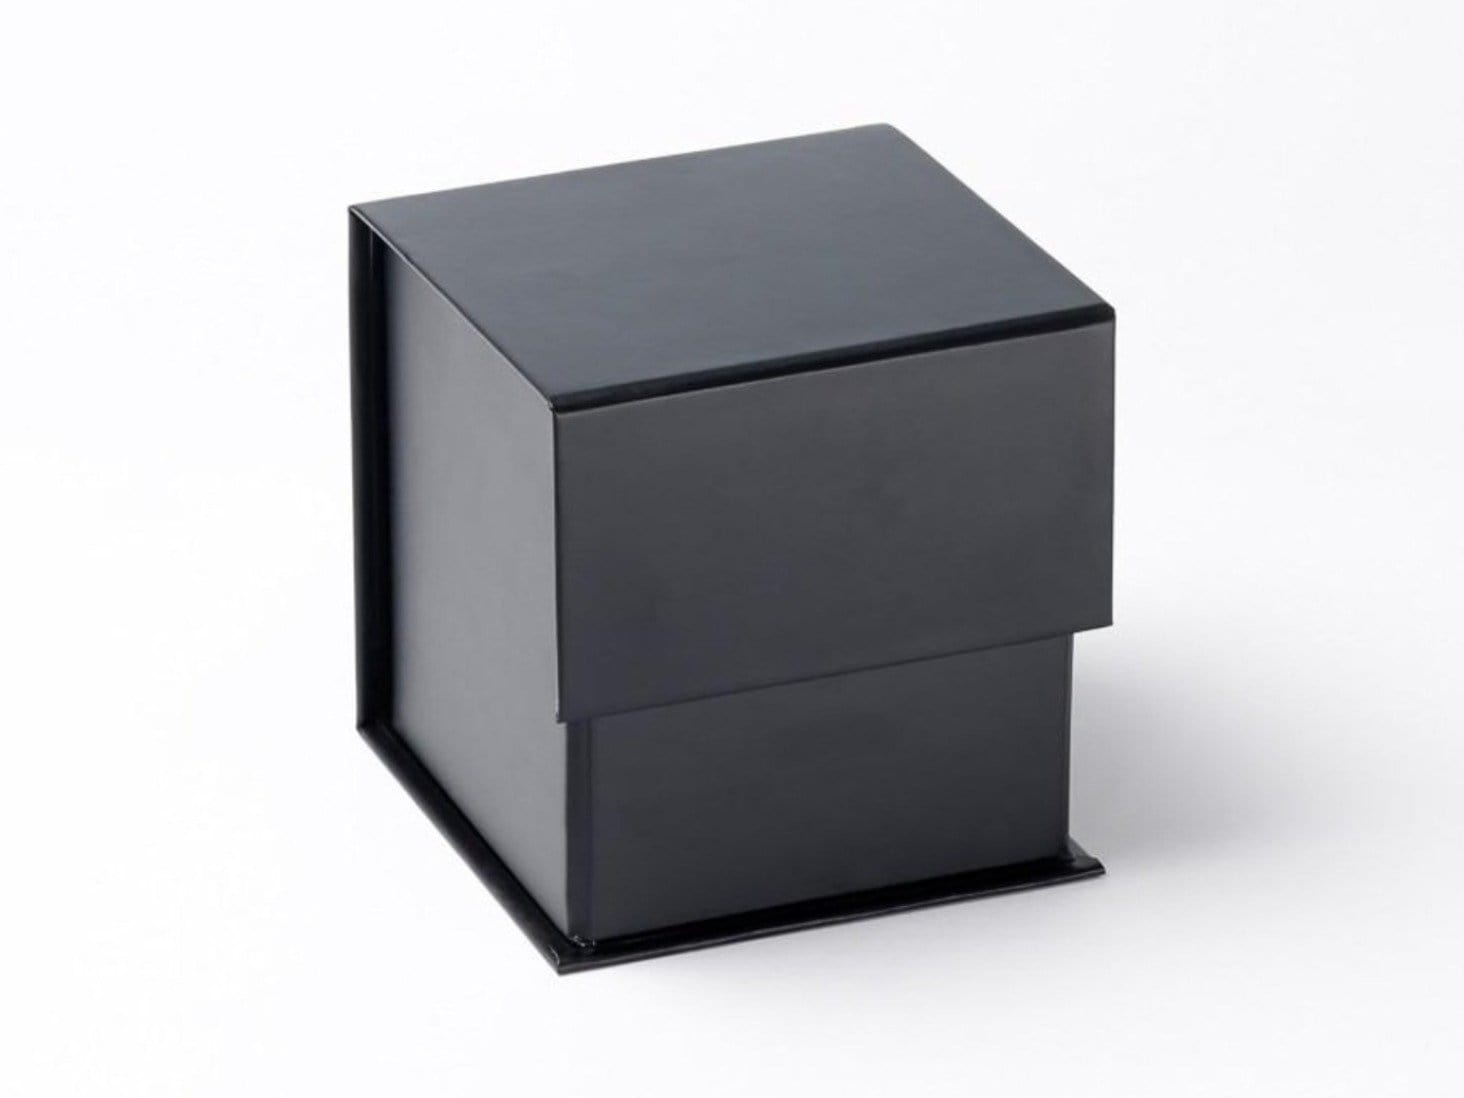 Black Large Cube Gift Box Ideal for Candle Packaging from Foldabox